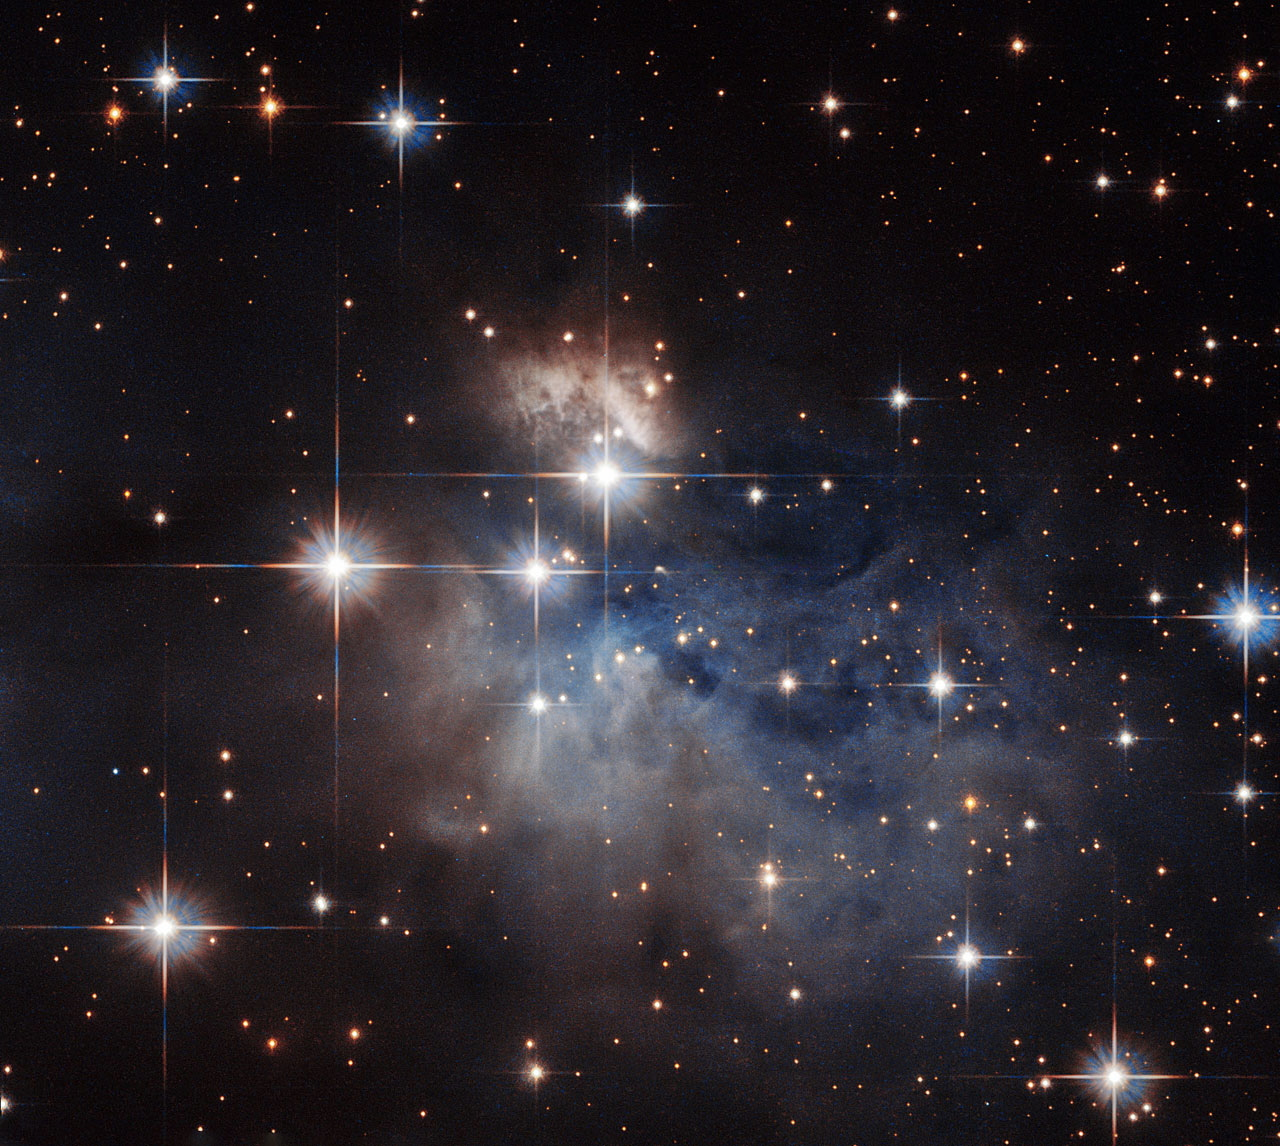 Emission-Line Star IRAS 12196-6300